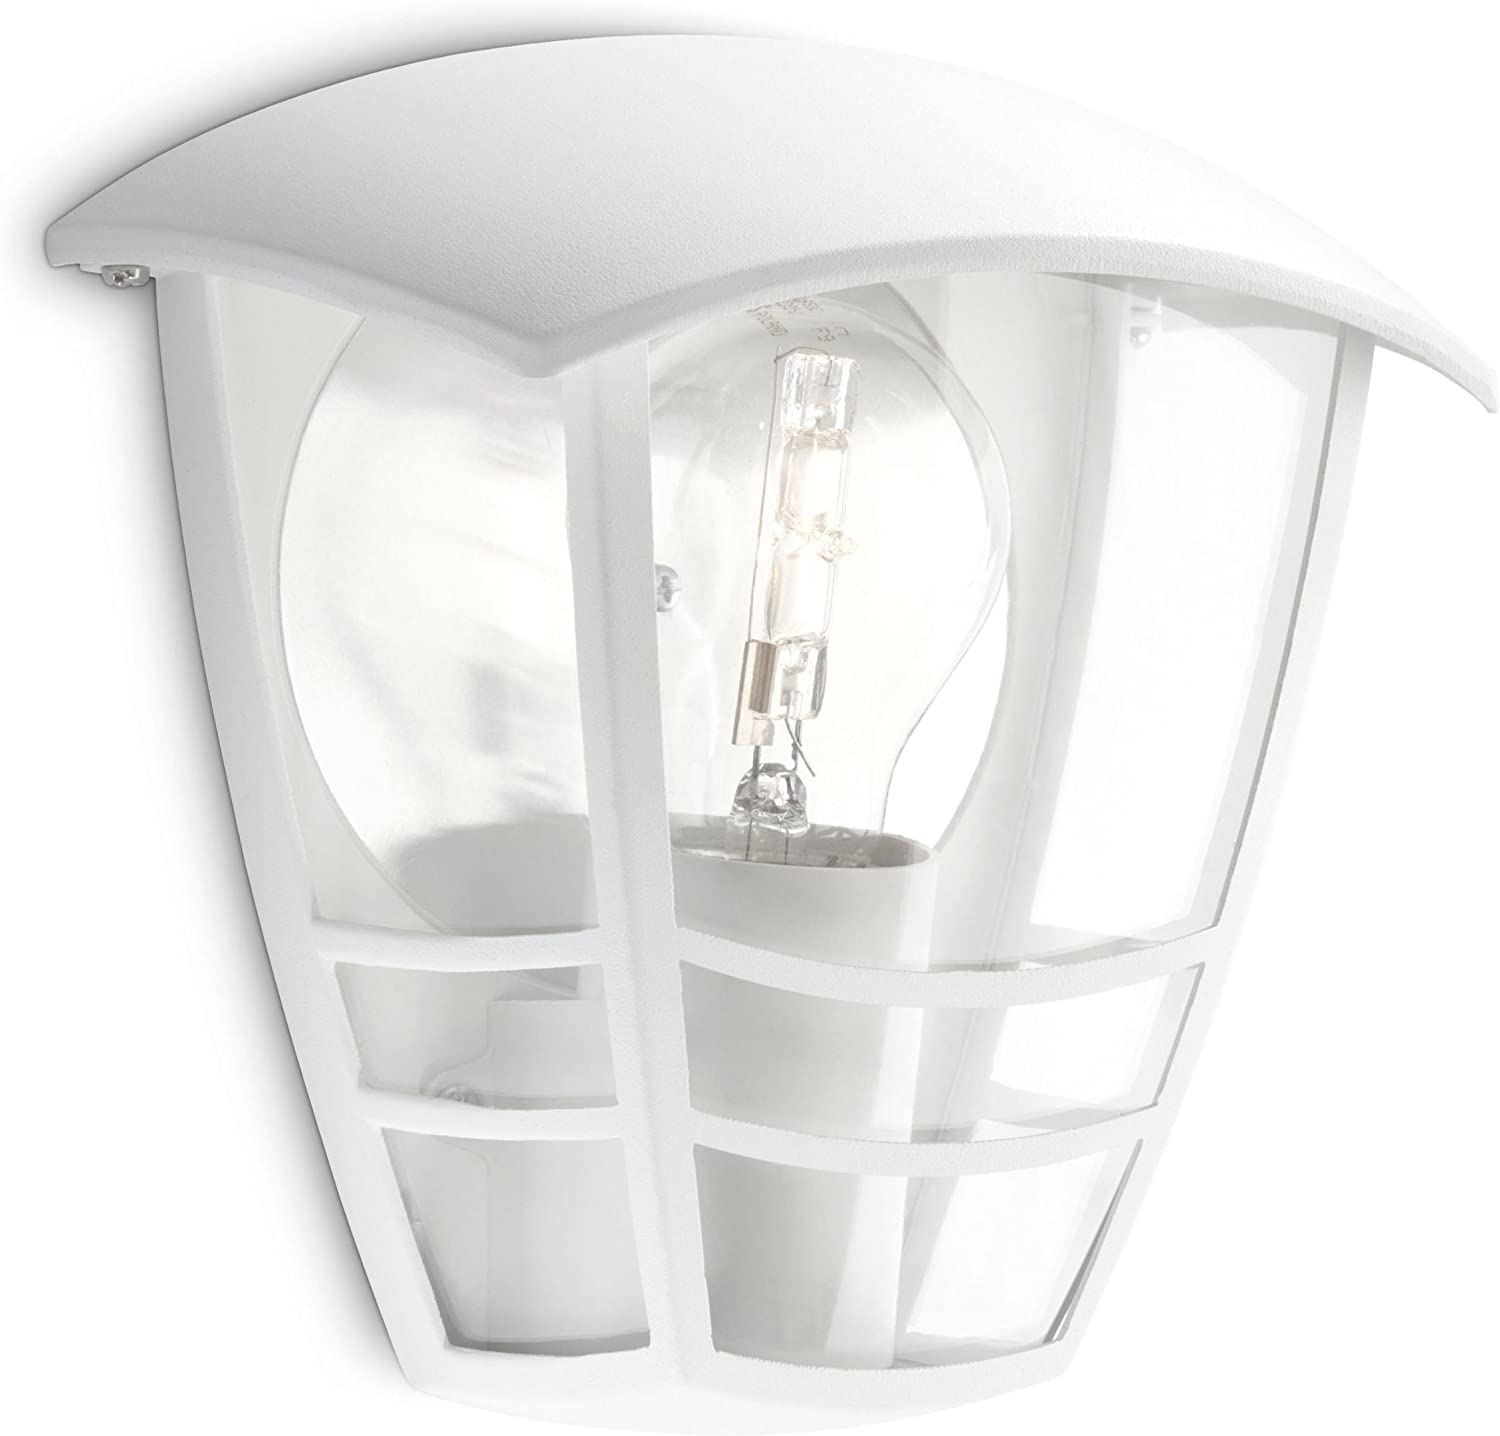 Philips Lighting myGarden Creek Aplique de exterior, empotrado, casquillo gordo E27, bombilla no incluida, resistente a la intemperie, IP44, blanco, 19.5 cm